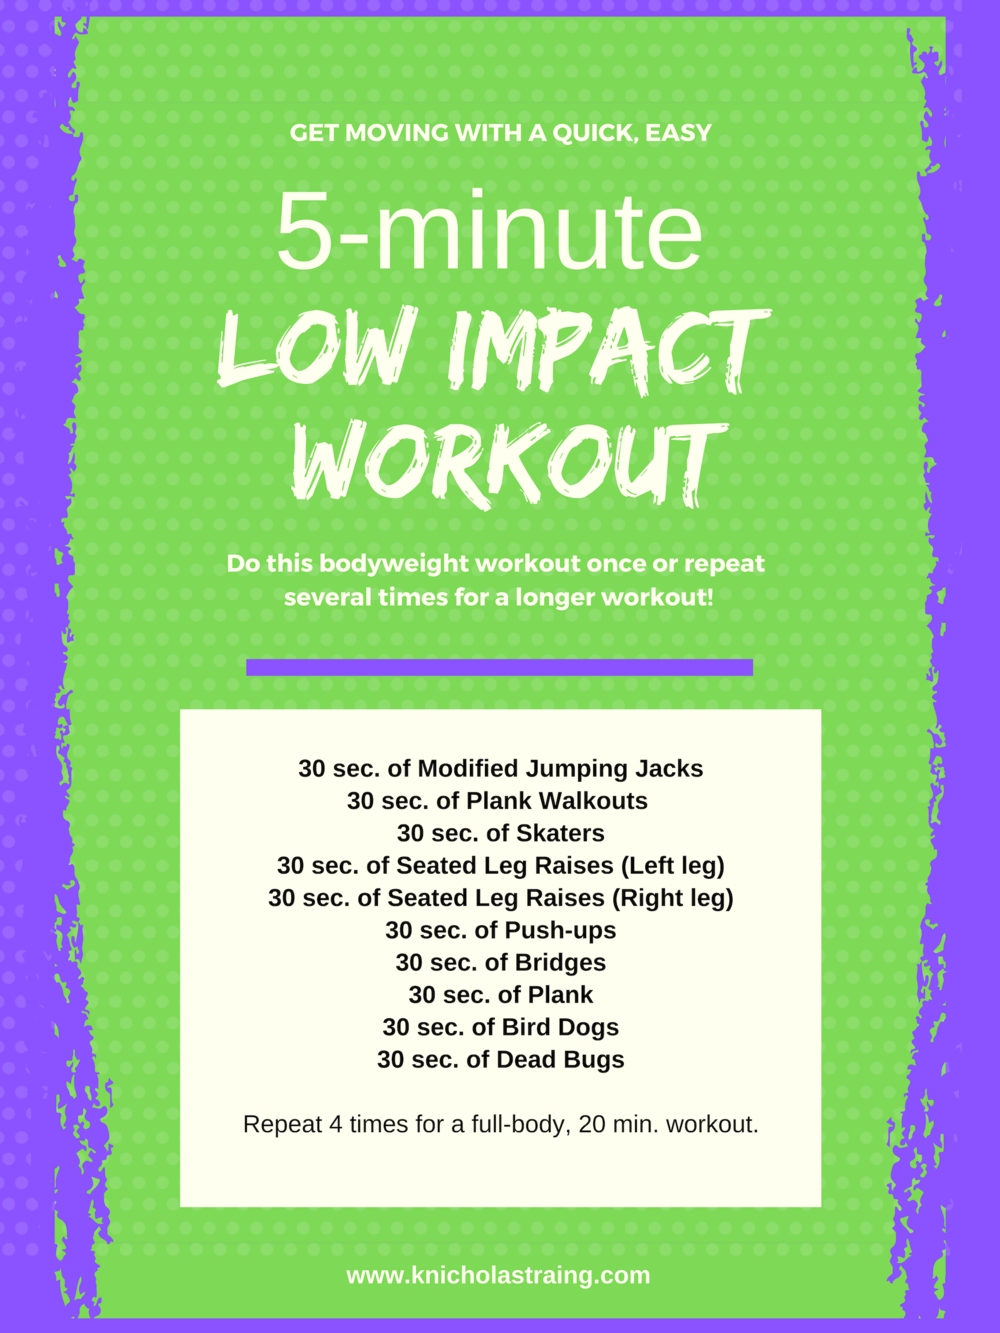 Low Impact 5 Min. Workout